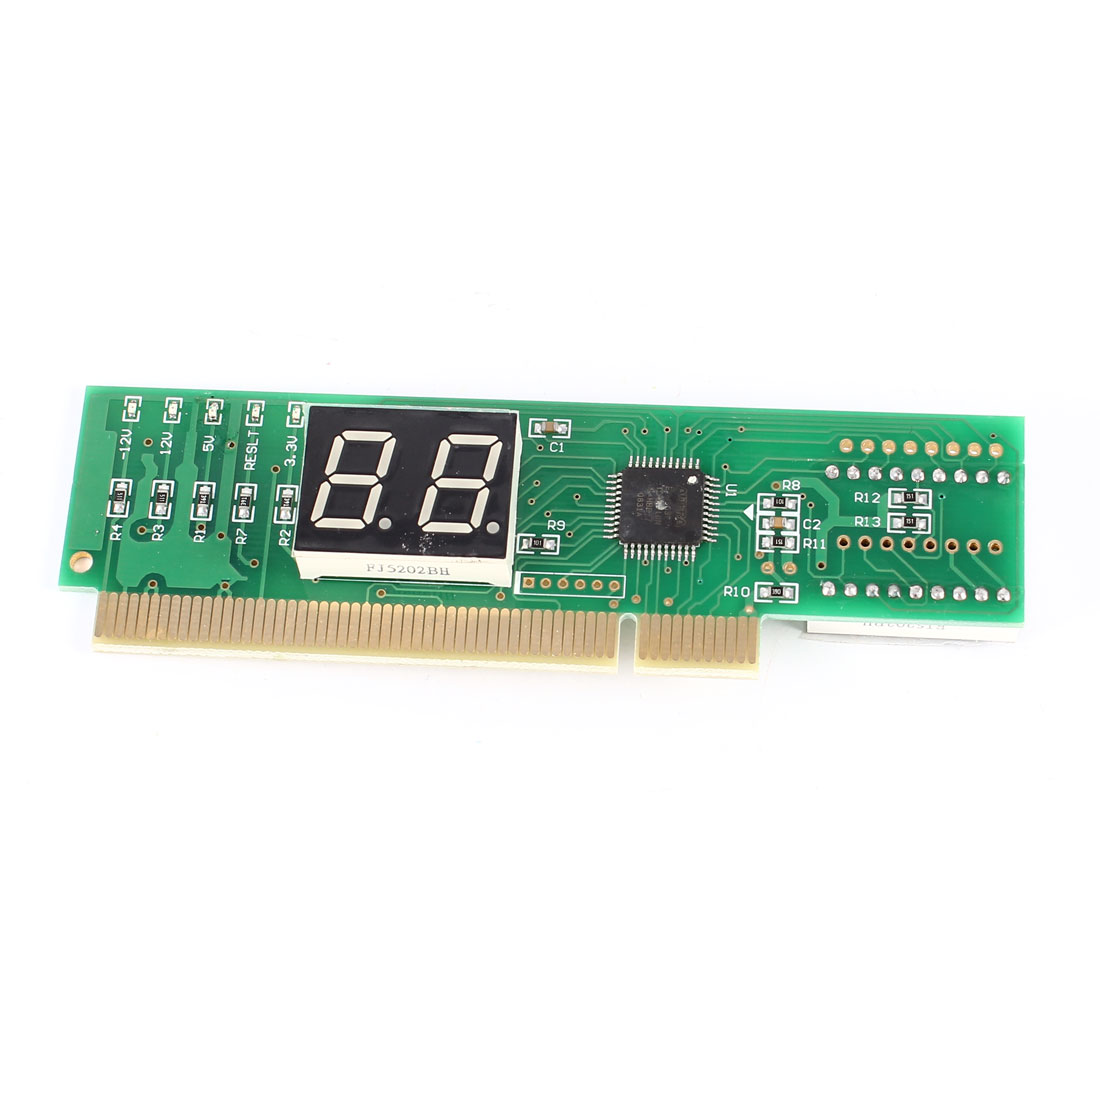 PC Computer Motherboard PCI 2 Digits Diagnostic Test Debug Analyzer POST Card